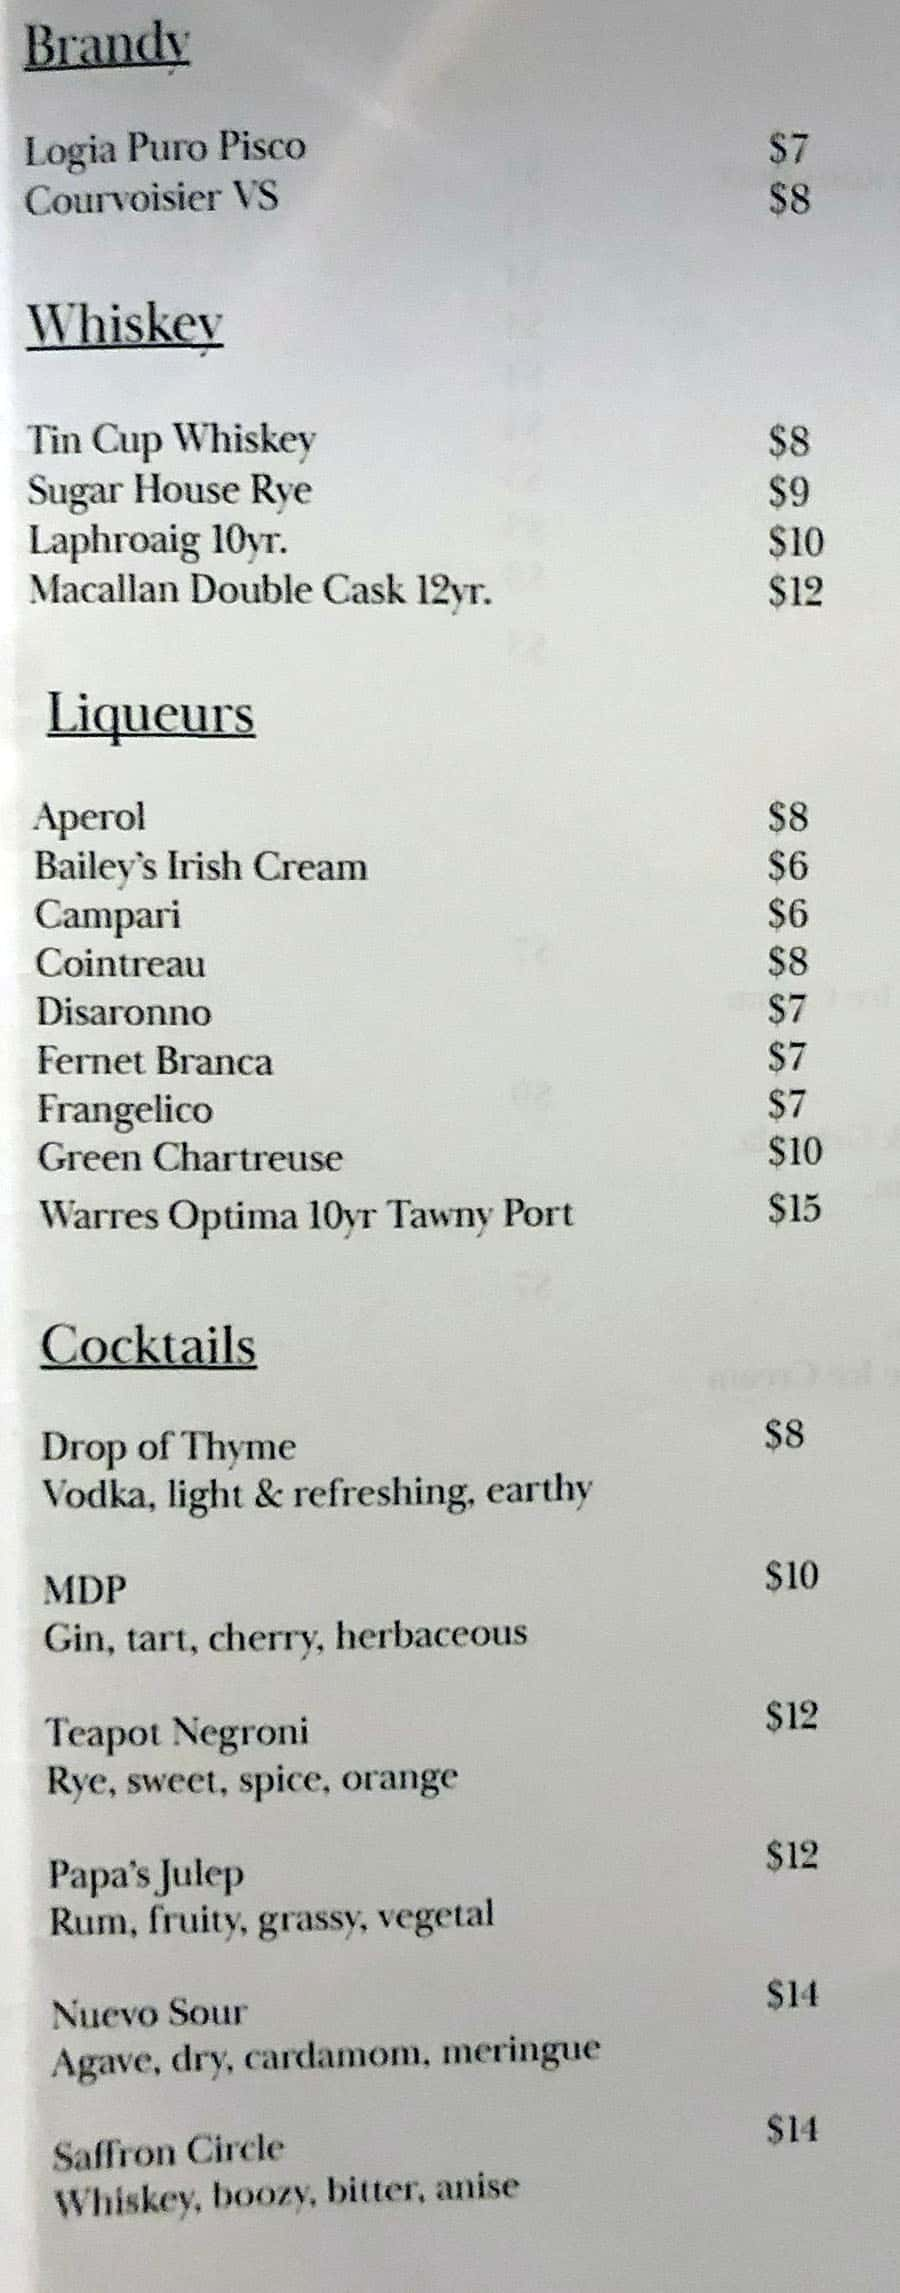 Oquirrh SLC drinks menu - liquor, cocktails